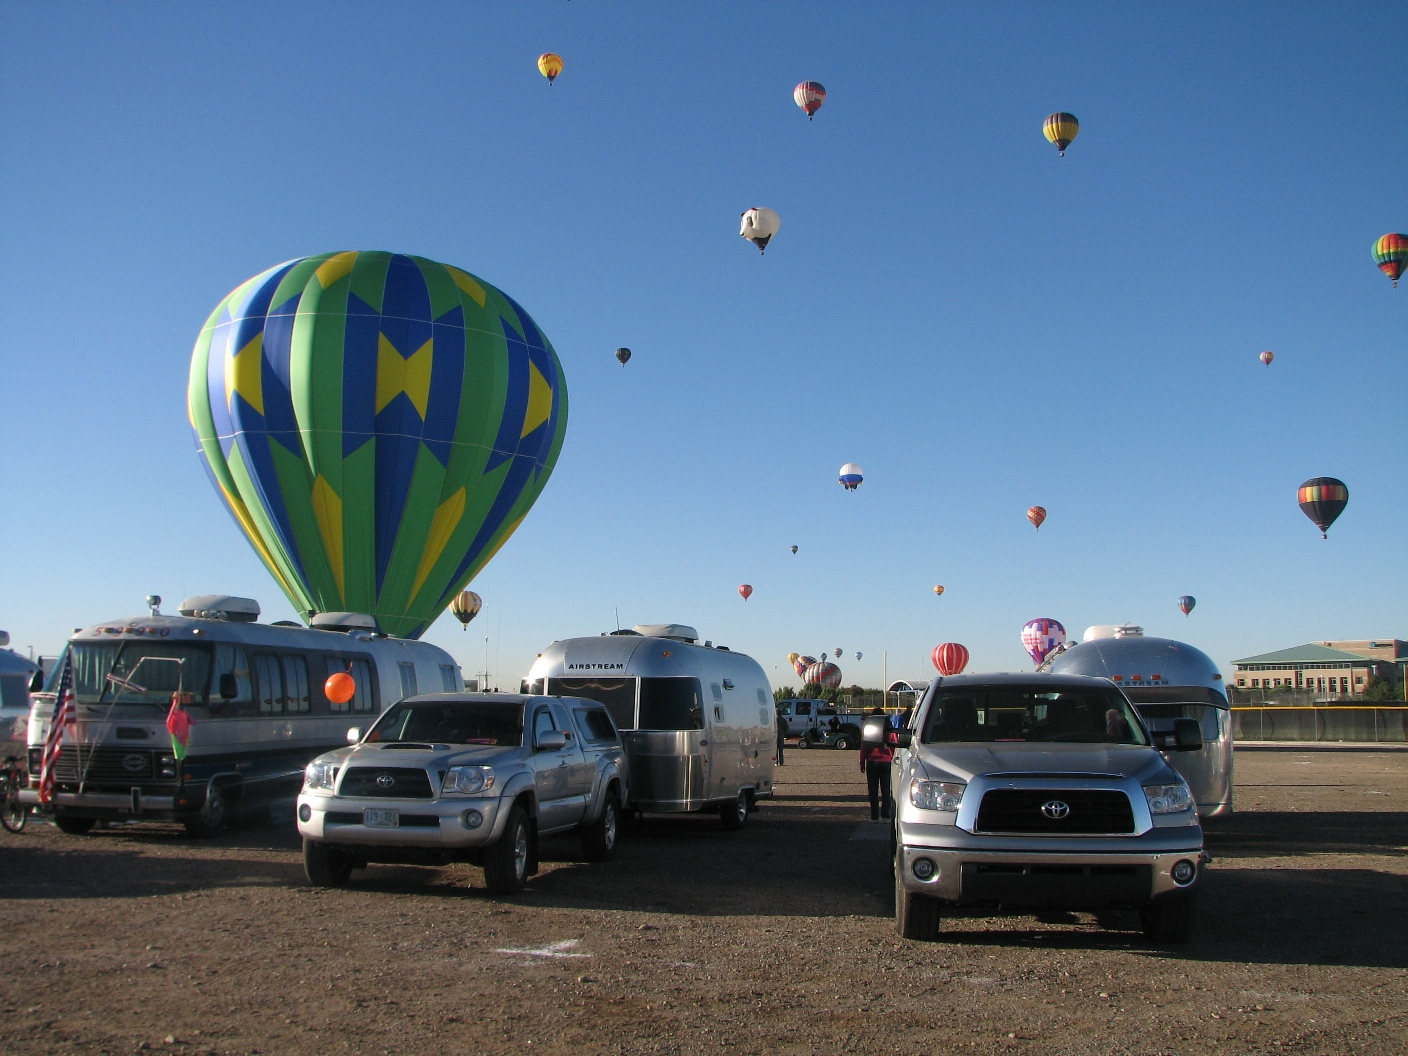 Click image for larger version  Name:balloons5.jpg Views:82 Size:627.1 KB ID:50424